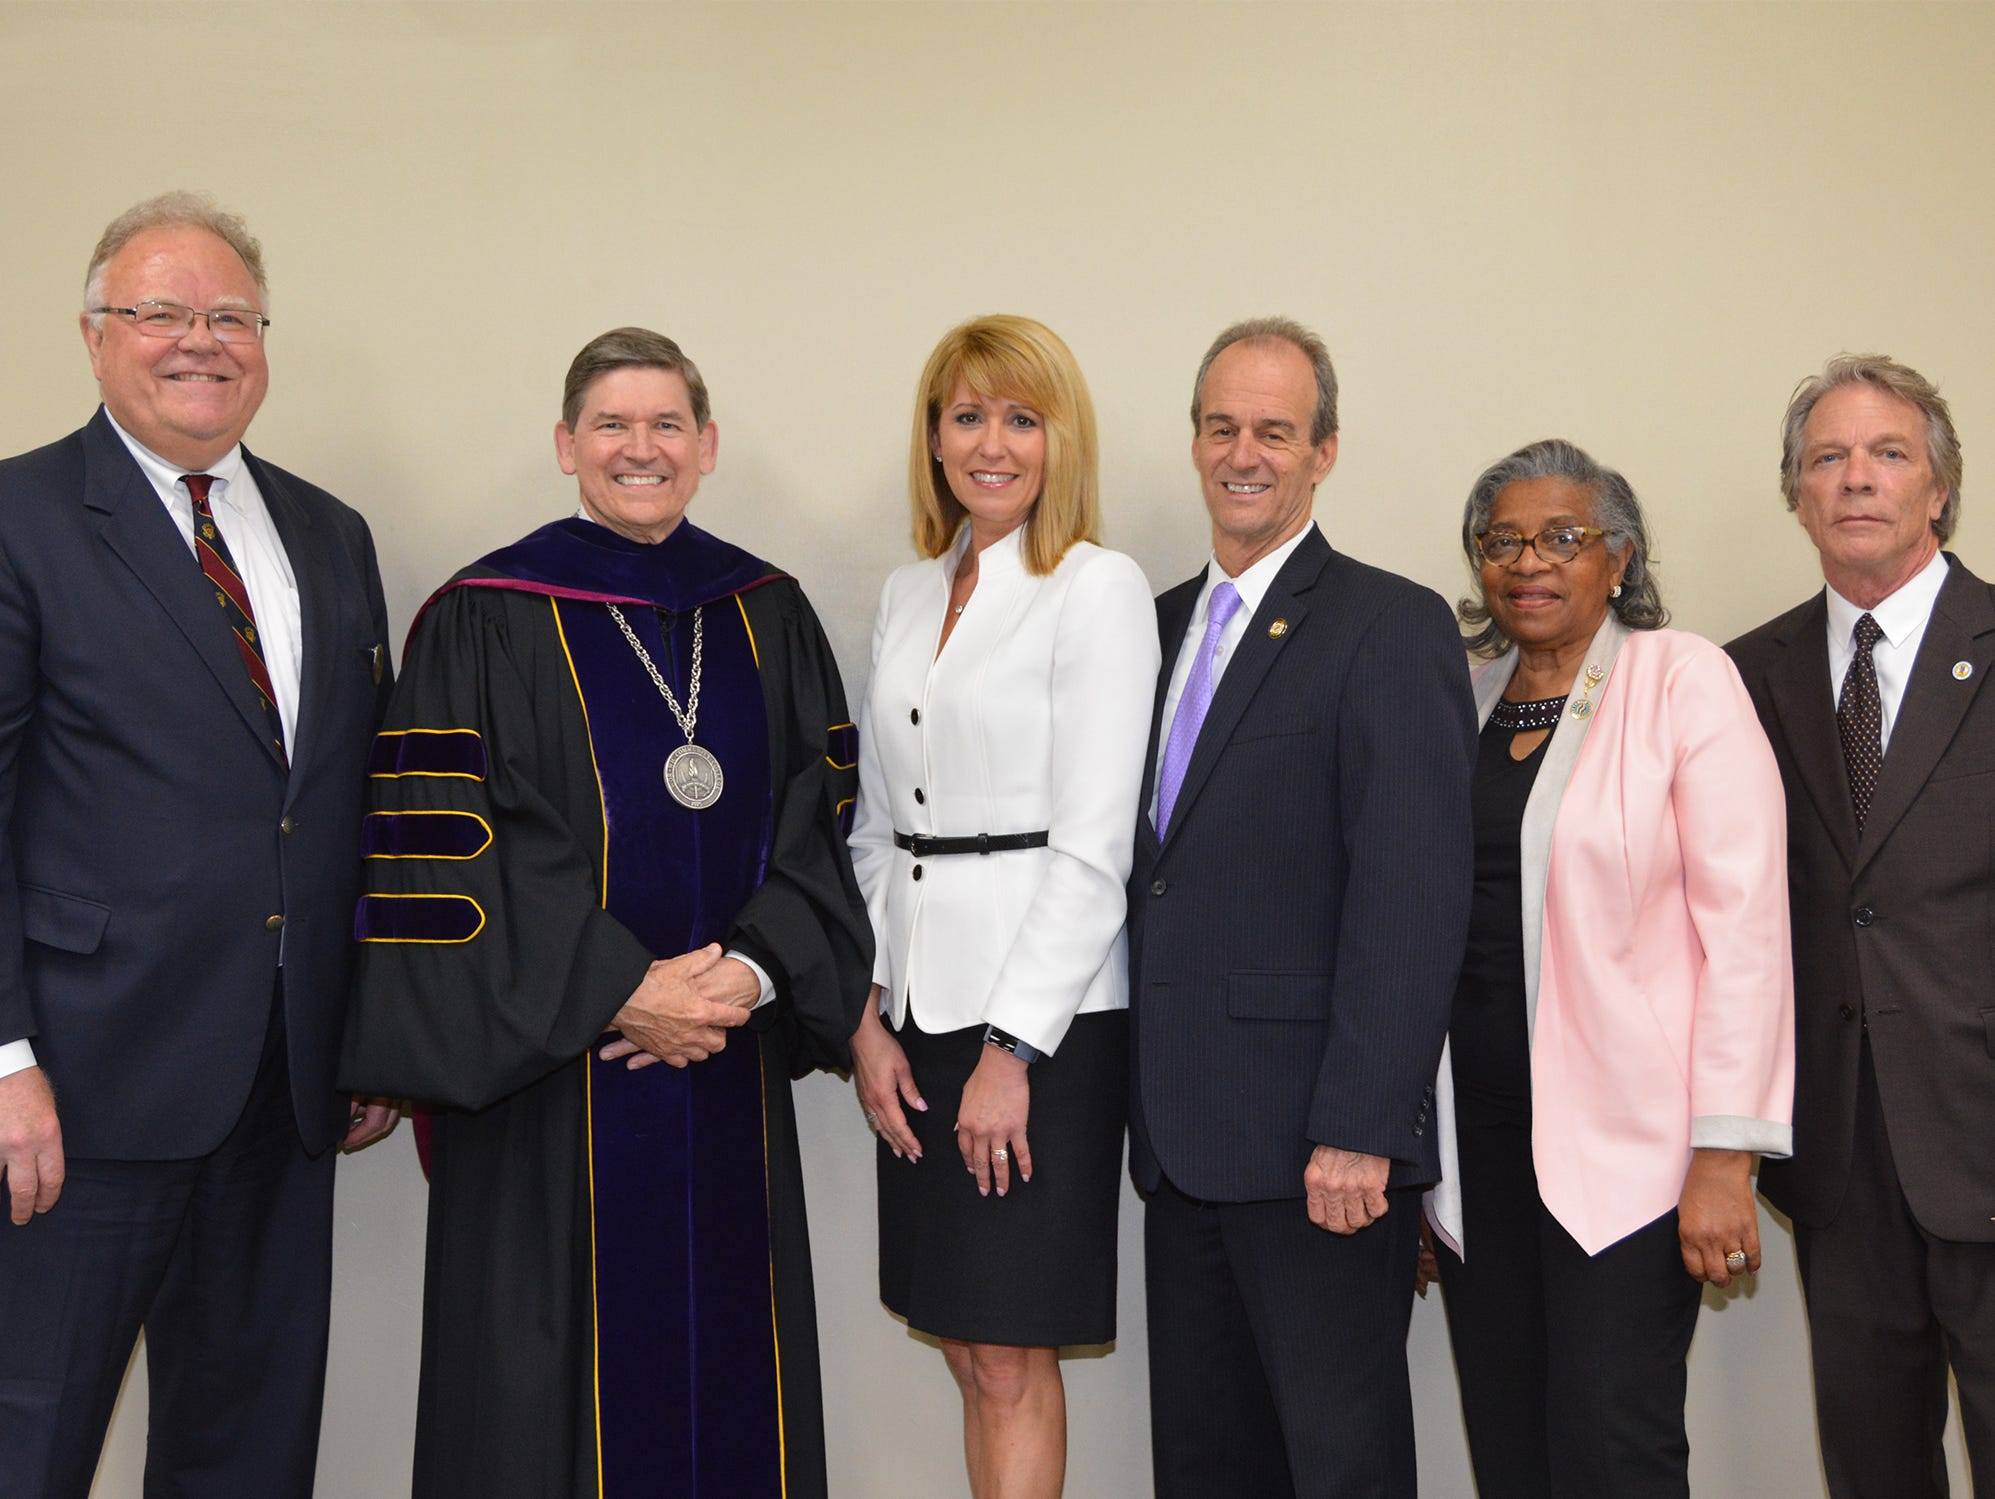 Officials on stage for Wor-Wic Community College commencement, from left, Martin T. Neat of Salisbury, chairperson of the board of trustees at Wor-Wic; Dr. Ray Hoy of Salisbury, president of the college; Kelly M. Schulz, secretary of the Maryland Department of Commerce, who was the commencement speaker; Wicomico County Executive Bob Culver of Salisbury; Diana Purnell of Berlin, president of the Worcester County Commissioners; and John Cannon of Salisbury, president of the Wicomico County Council.